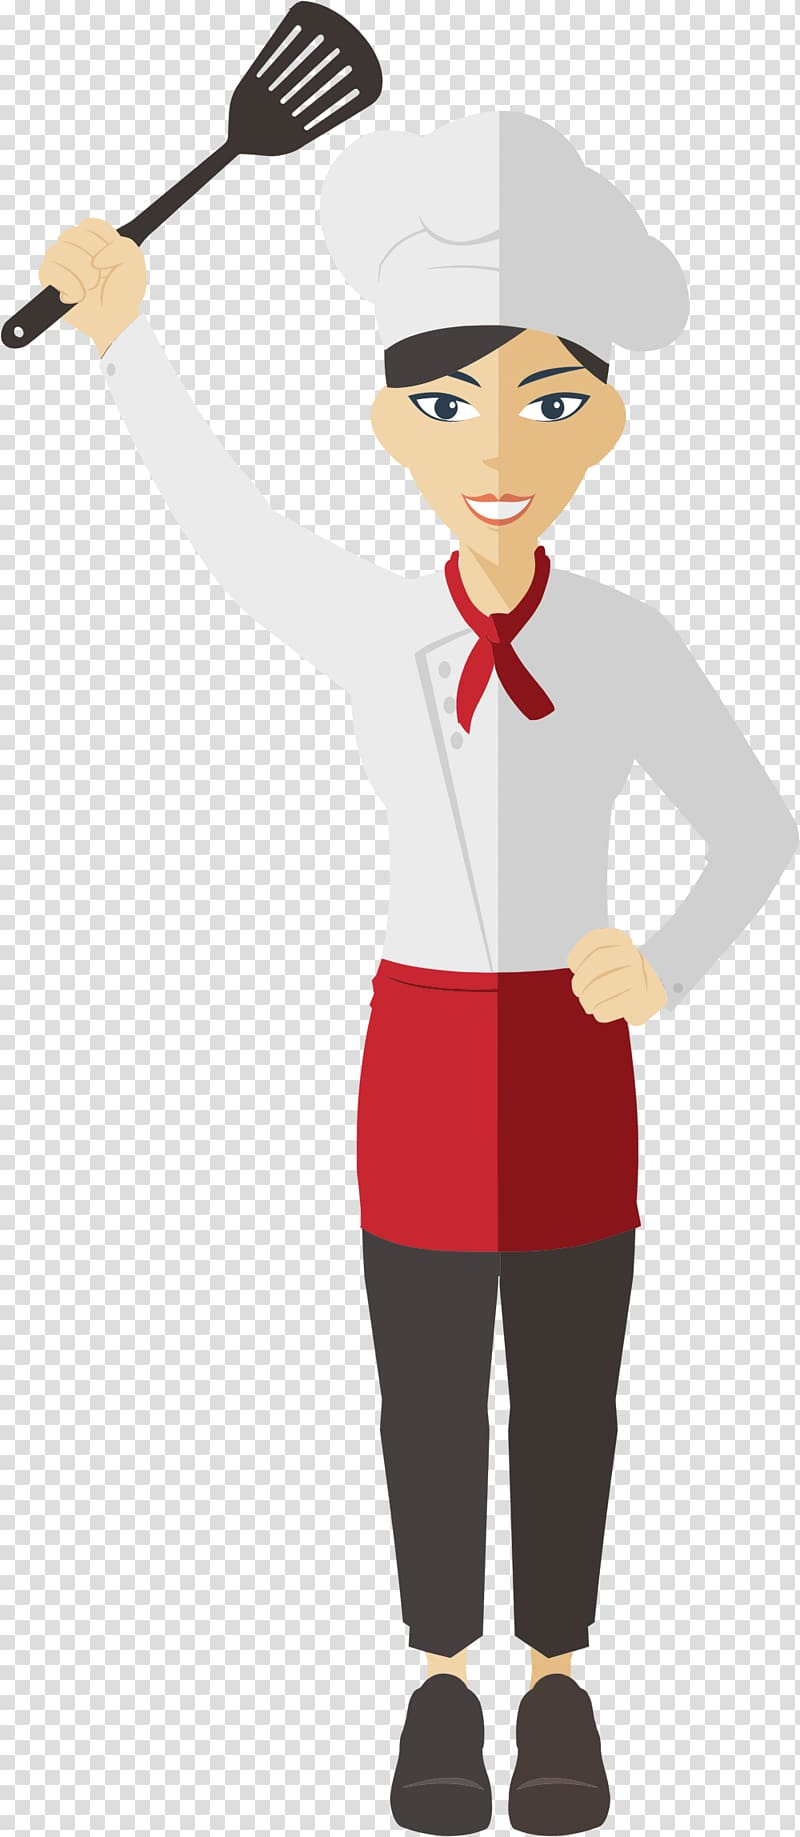 Chef Cooking Female , Female Chef transparent background PNG clipart.